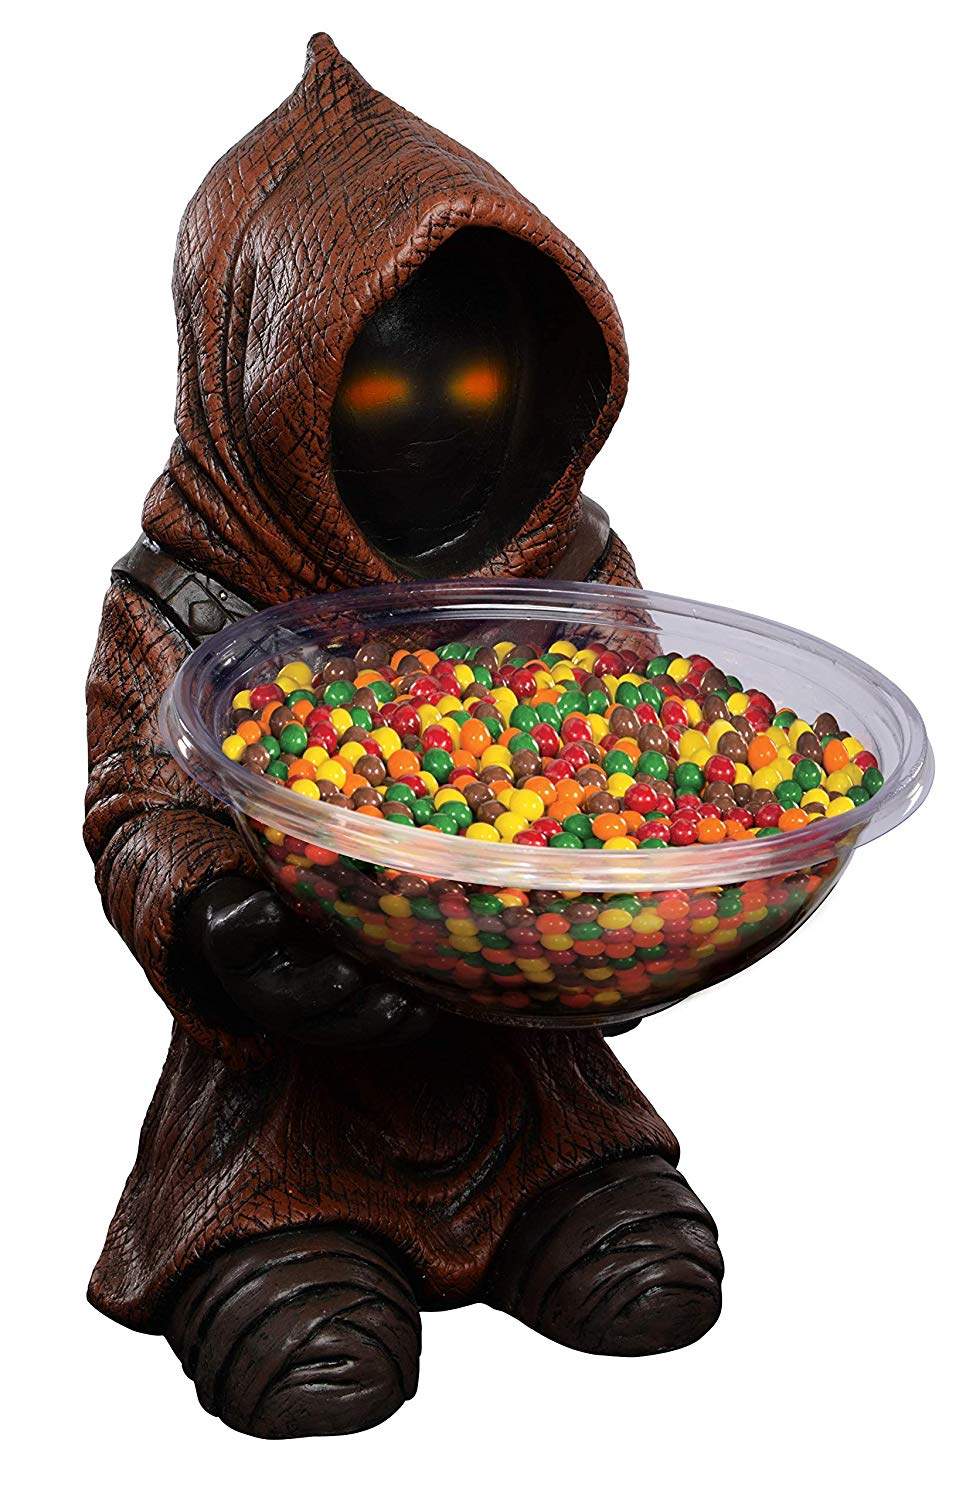 Candy Bowl Holder Star Wars Jawa Half Foam Licensed Statue - LM Treasures Life Size Statues & Prop Rental